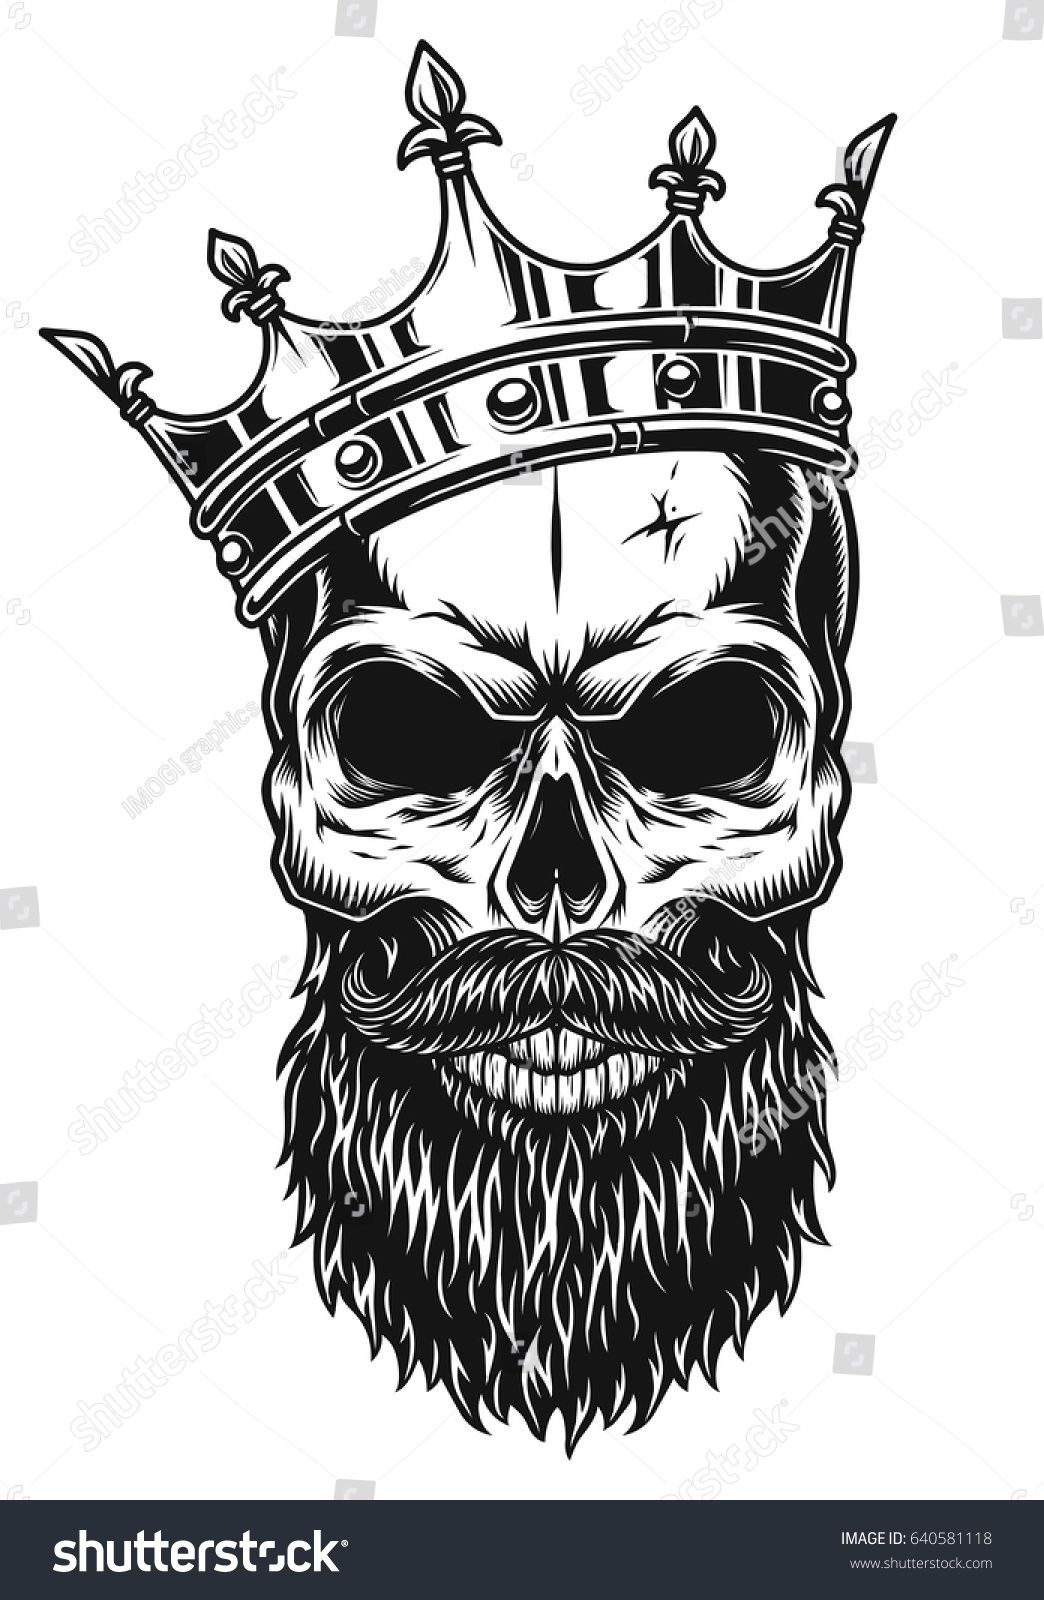 Illustration of black and white skull in crown with beard isolated ...